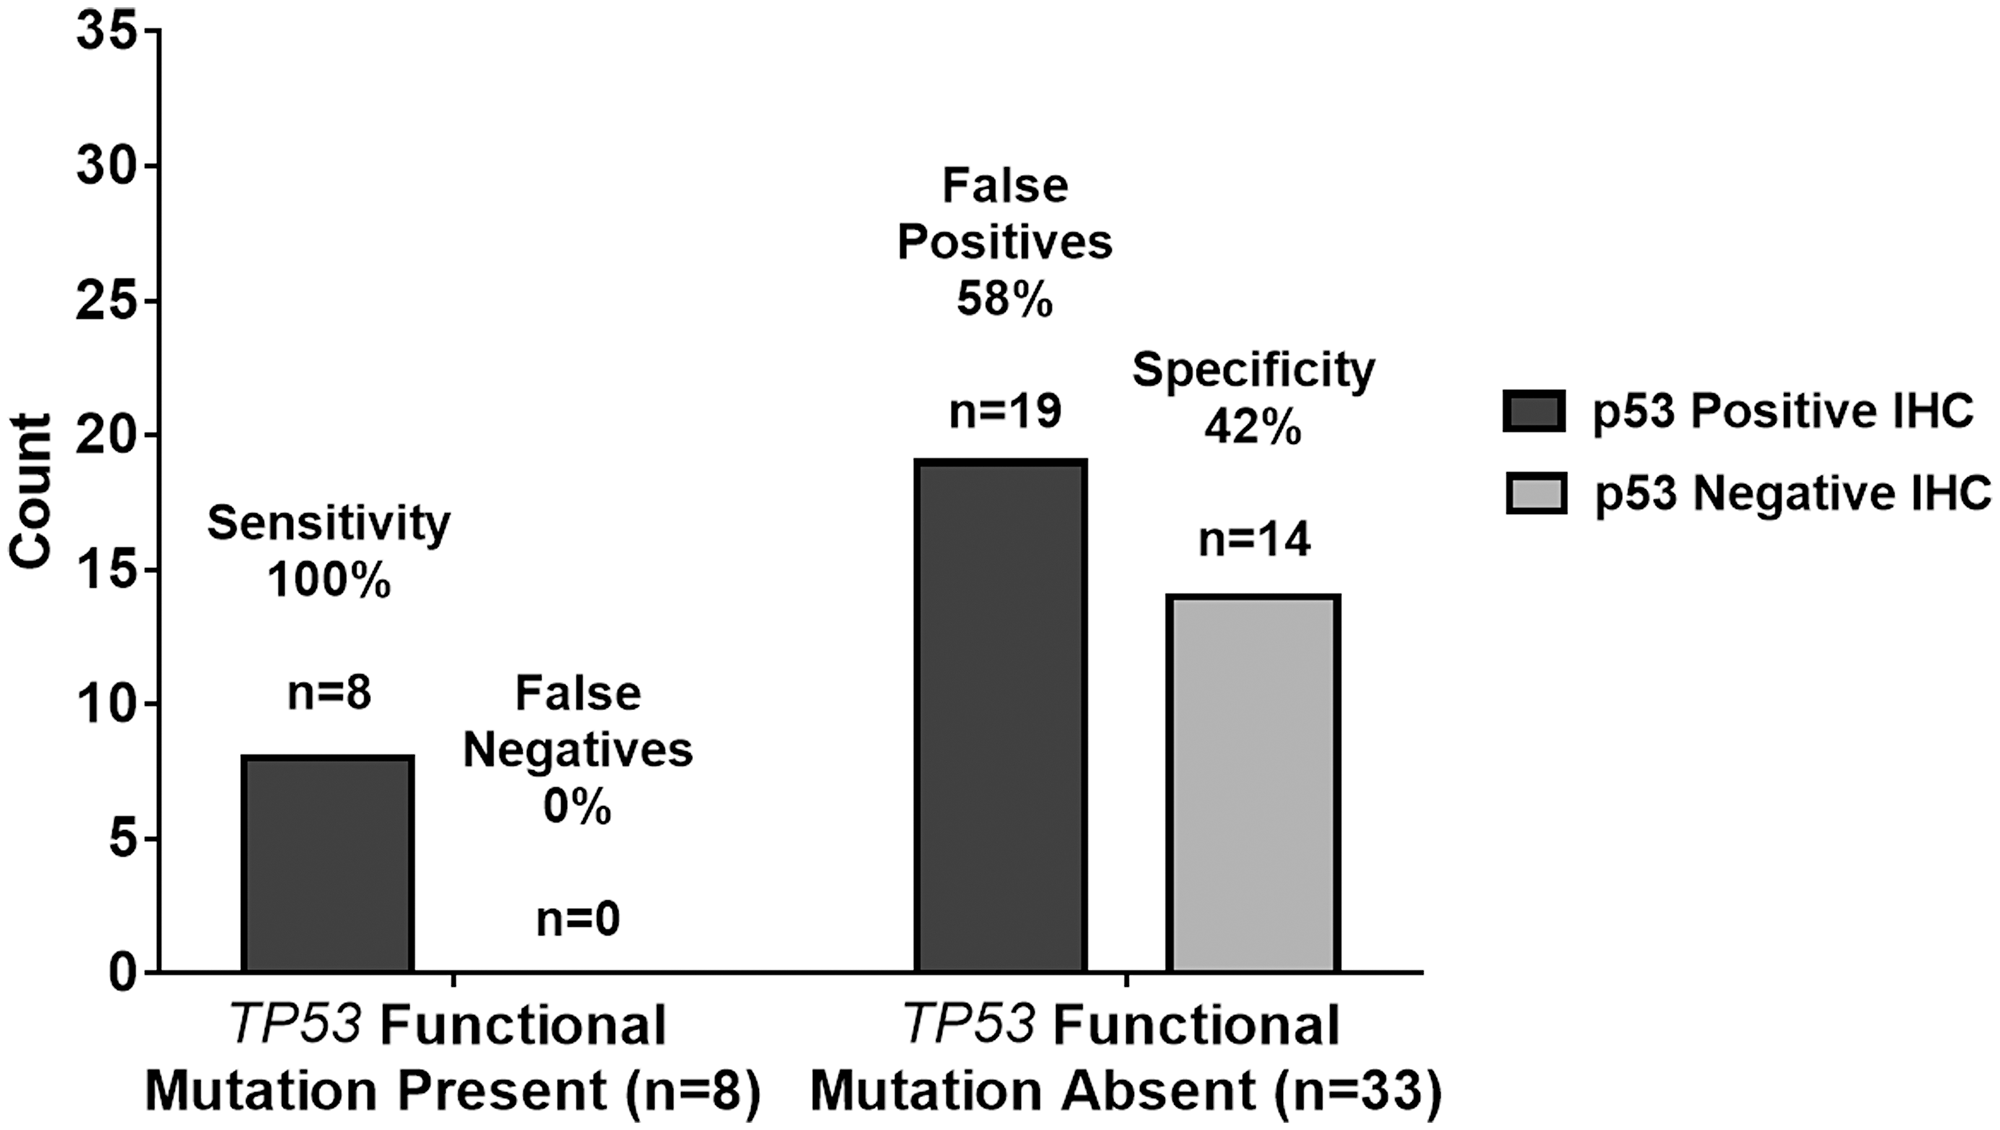 Graphical summary of TP53 genetic sequencing results versus p53 IHC staining test results with a ≥10% threshold.